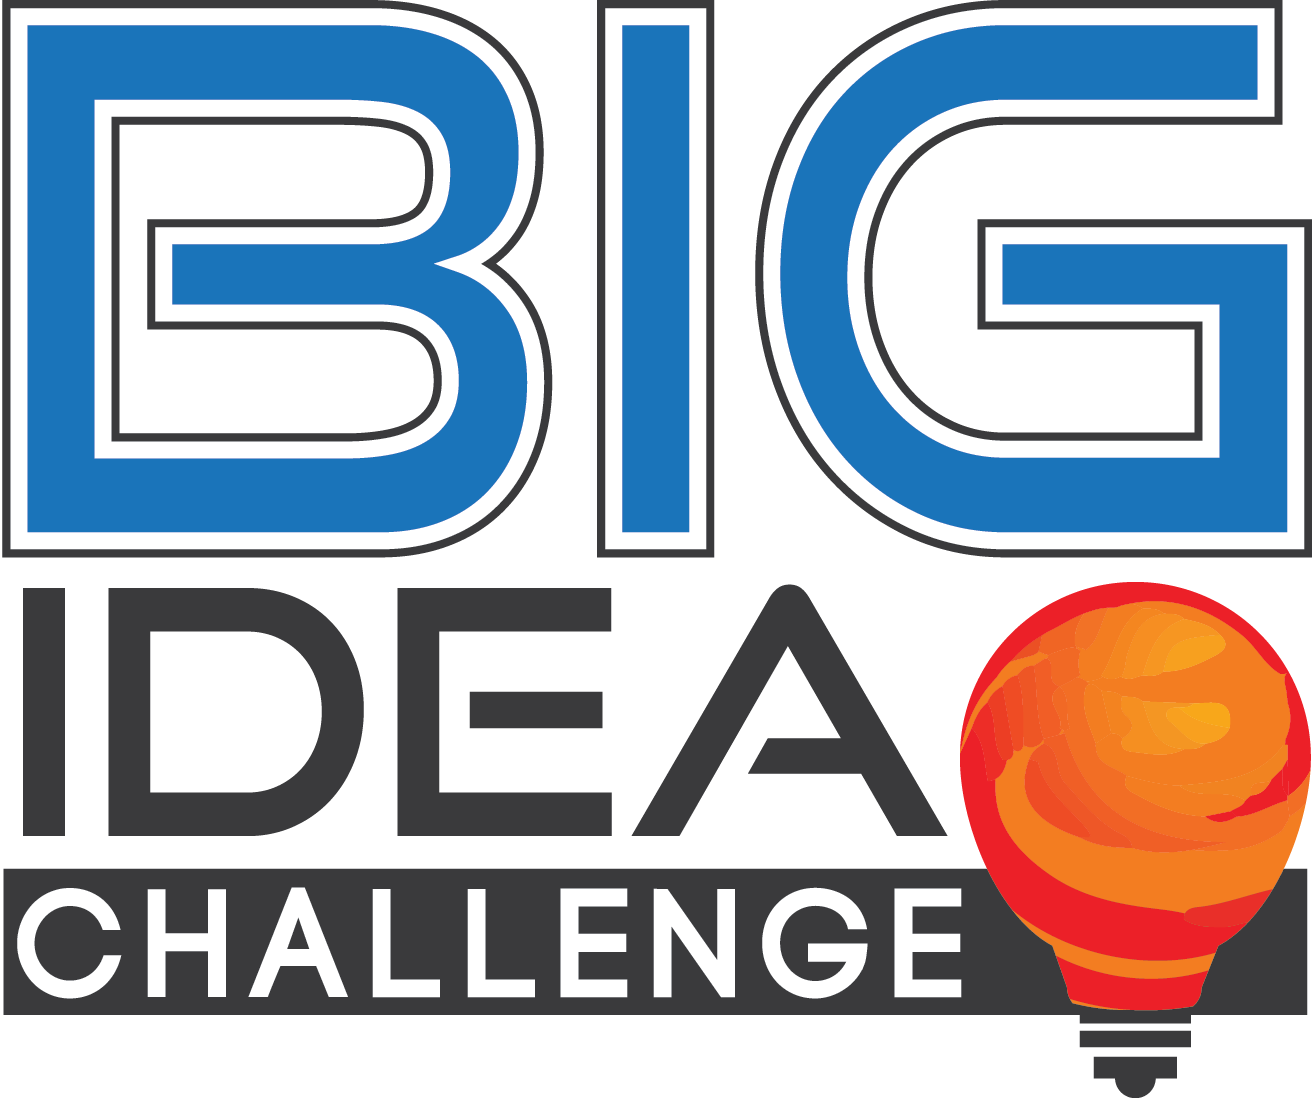 The BIG Idea Challenge